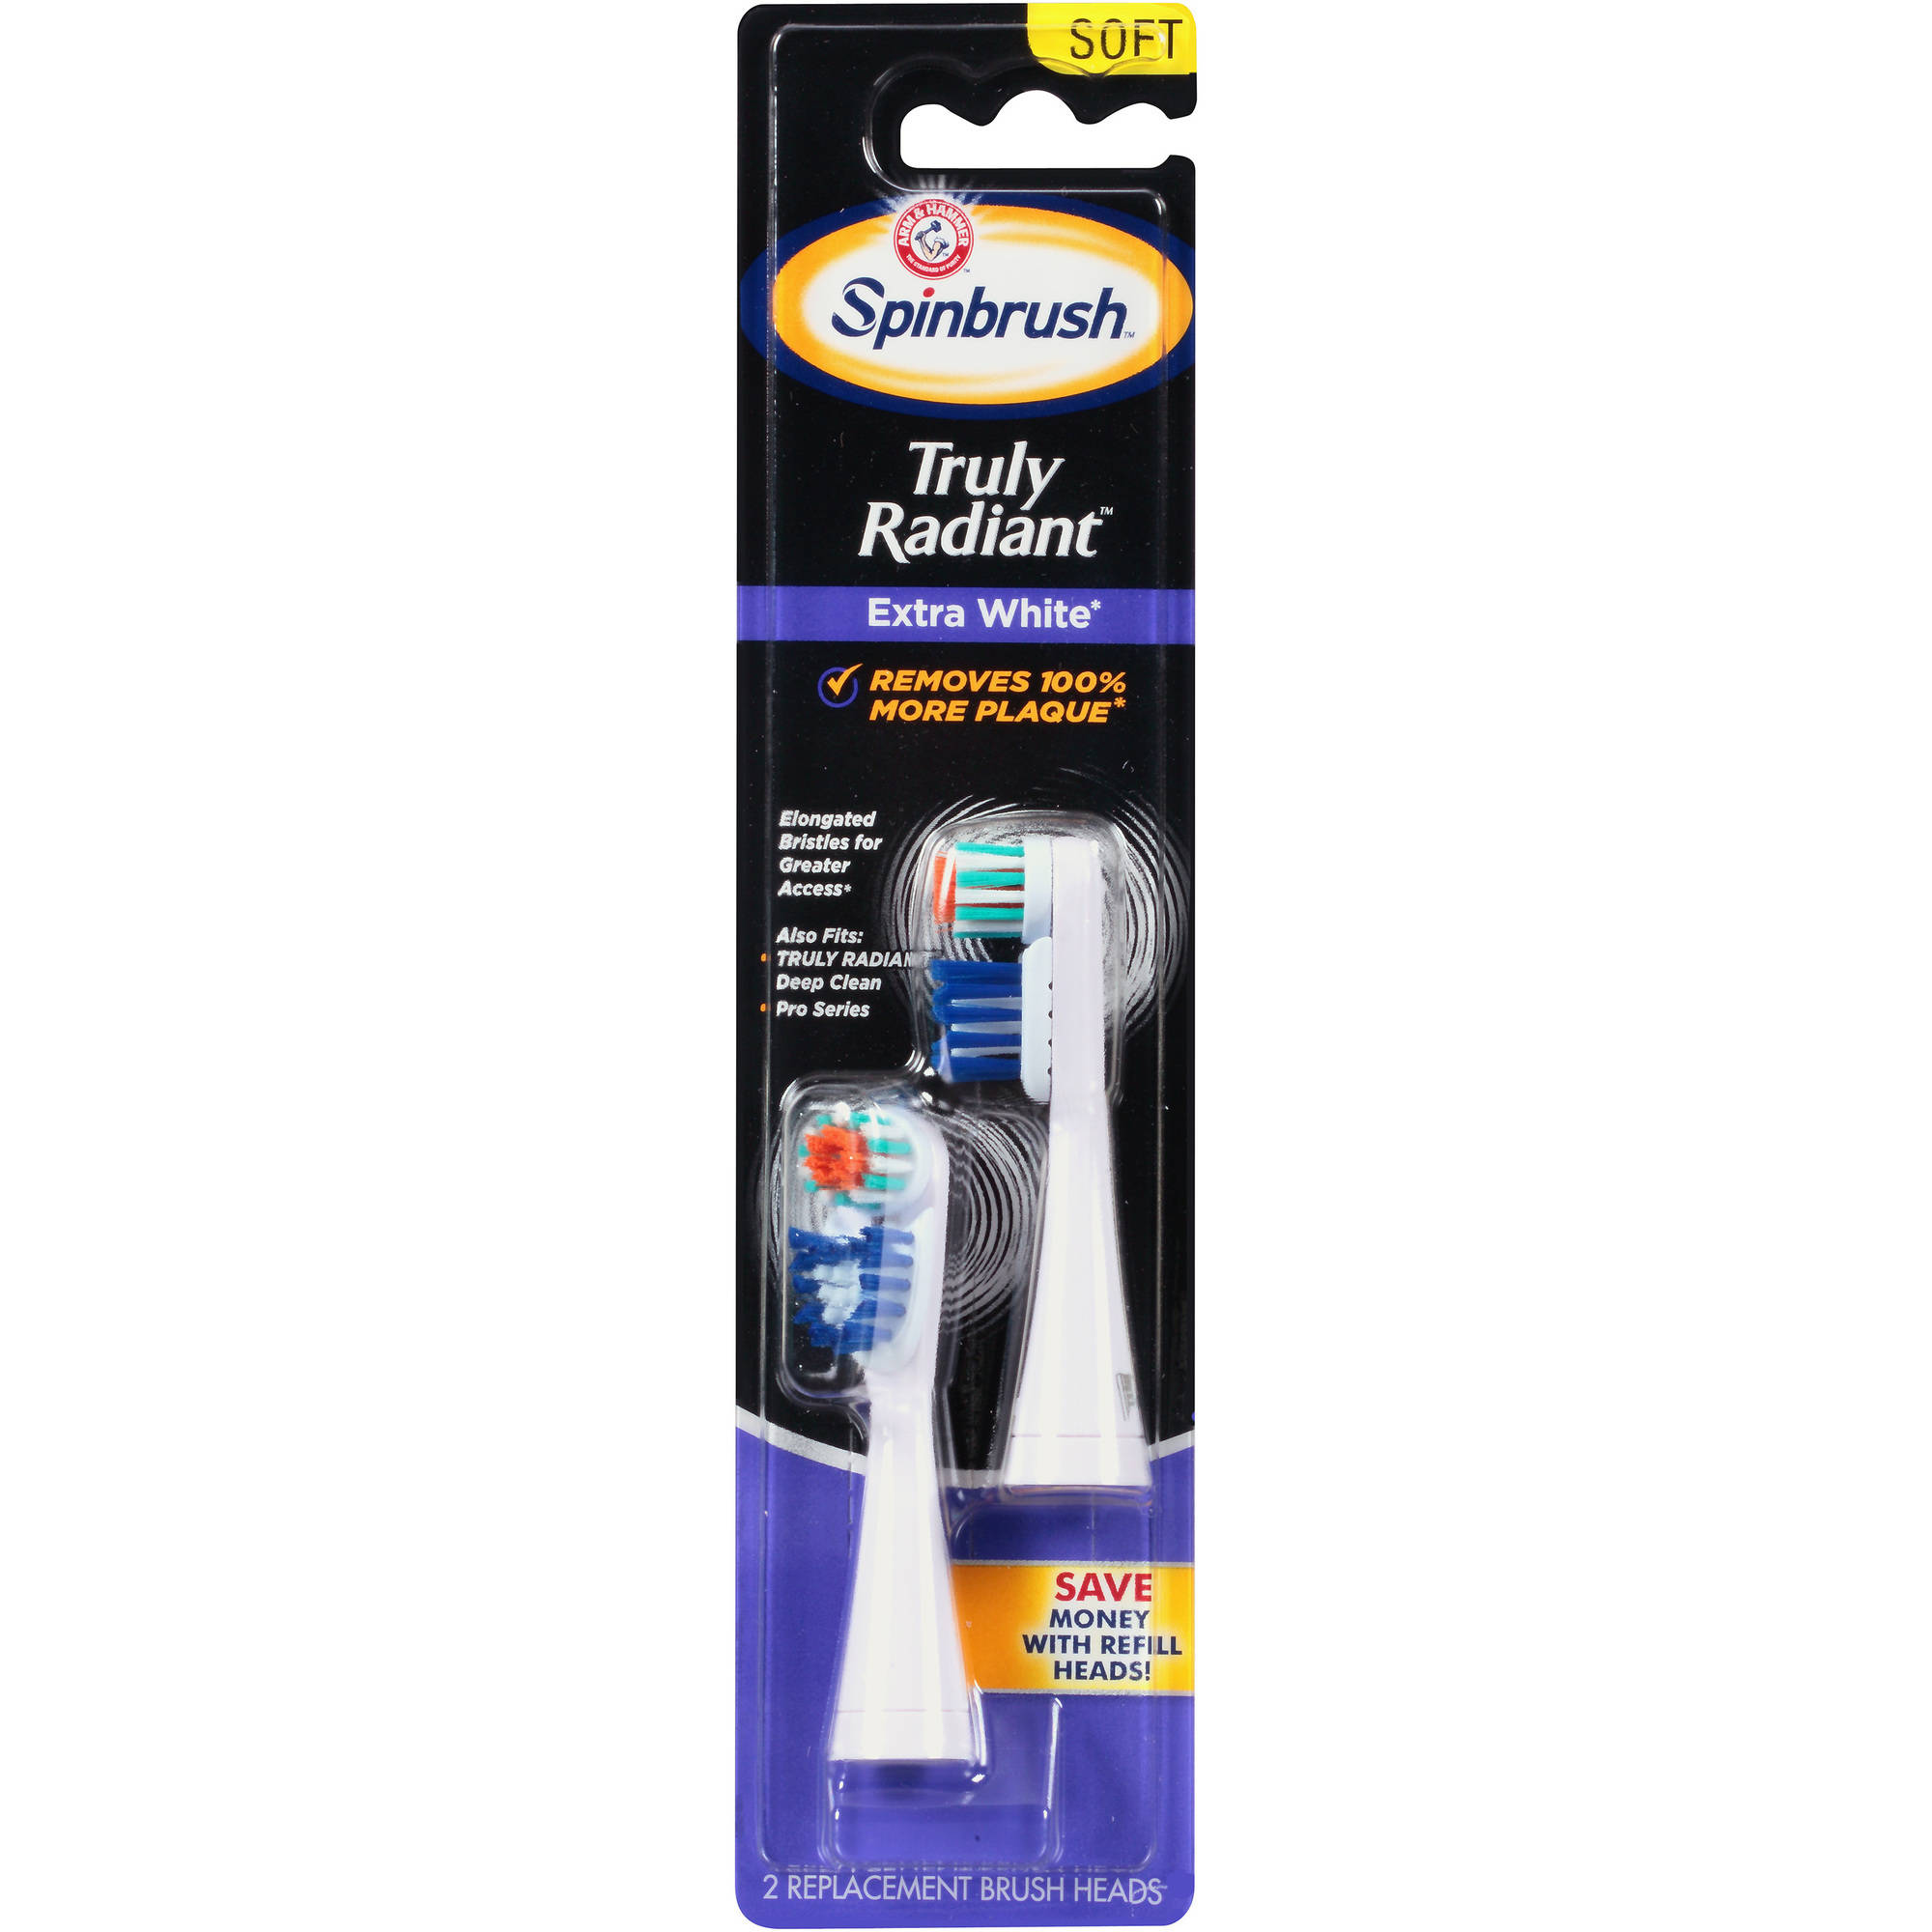 Arm & Hammer Spinbrush Truly Radiant Extra White  Replacement Toothbrush Heads, 2 count